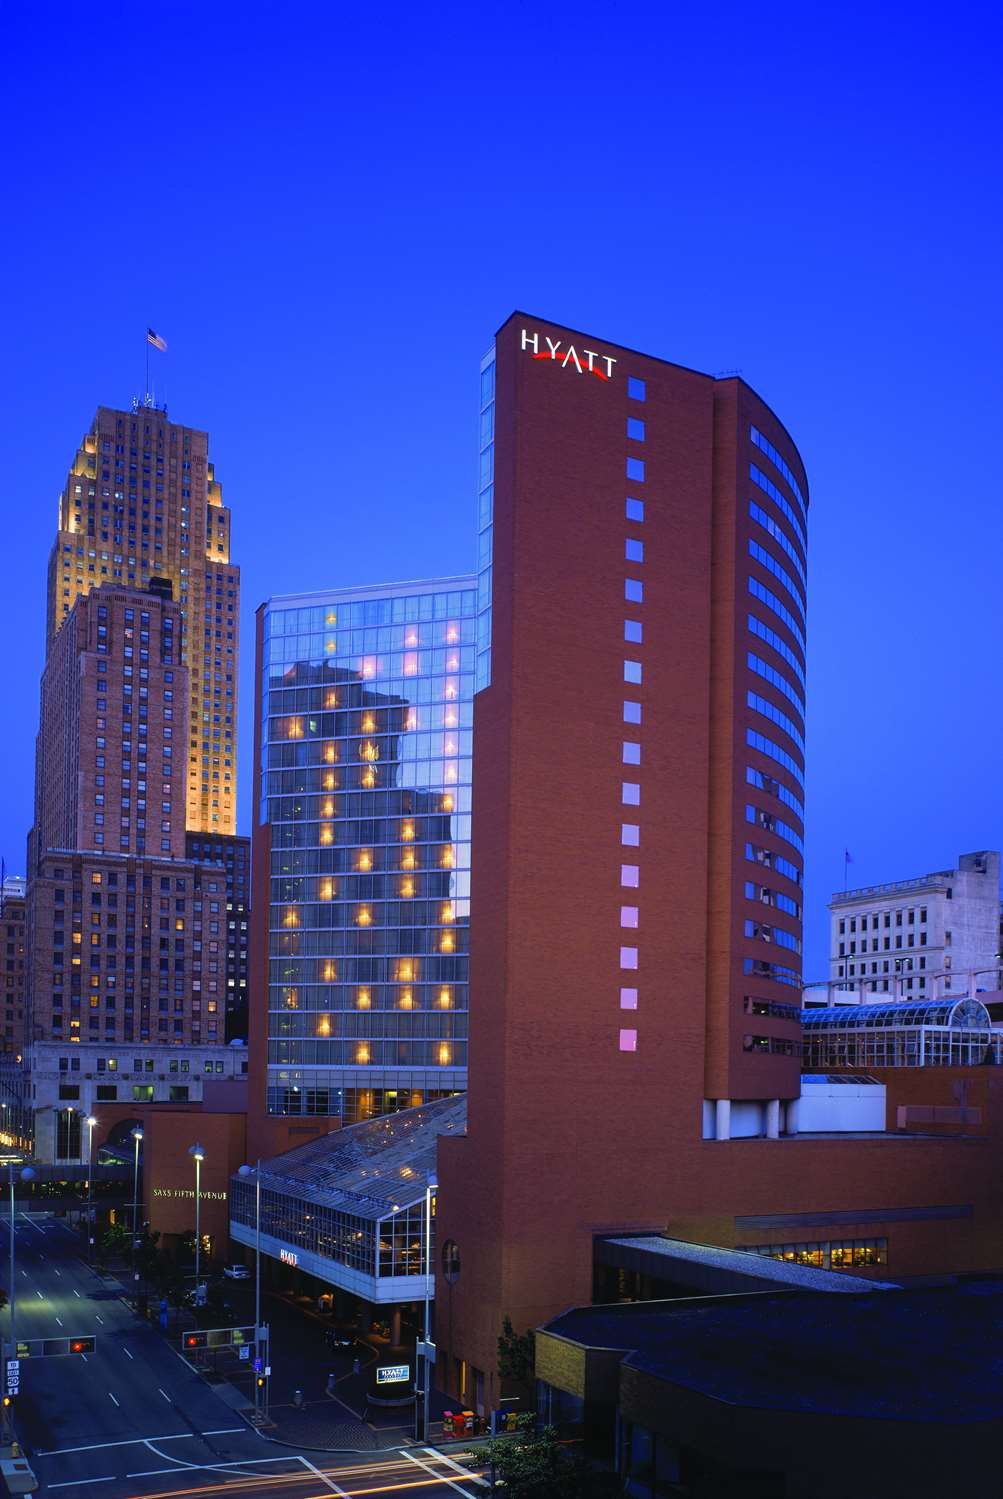 Hyatt Regency Hotel Downtown Cincinnati